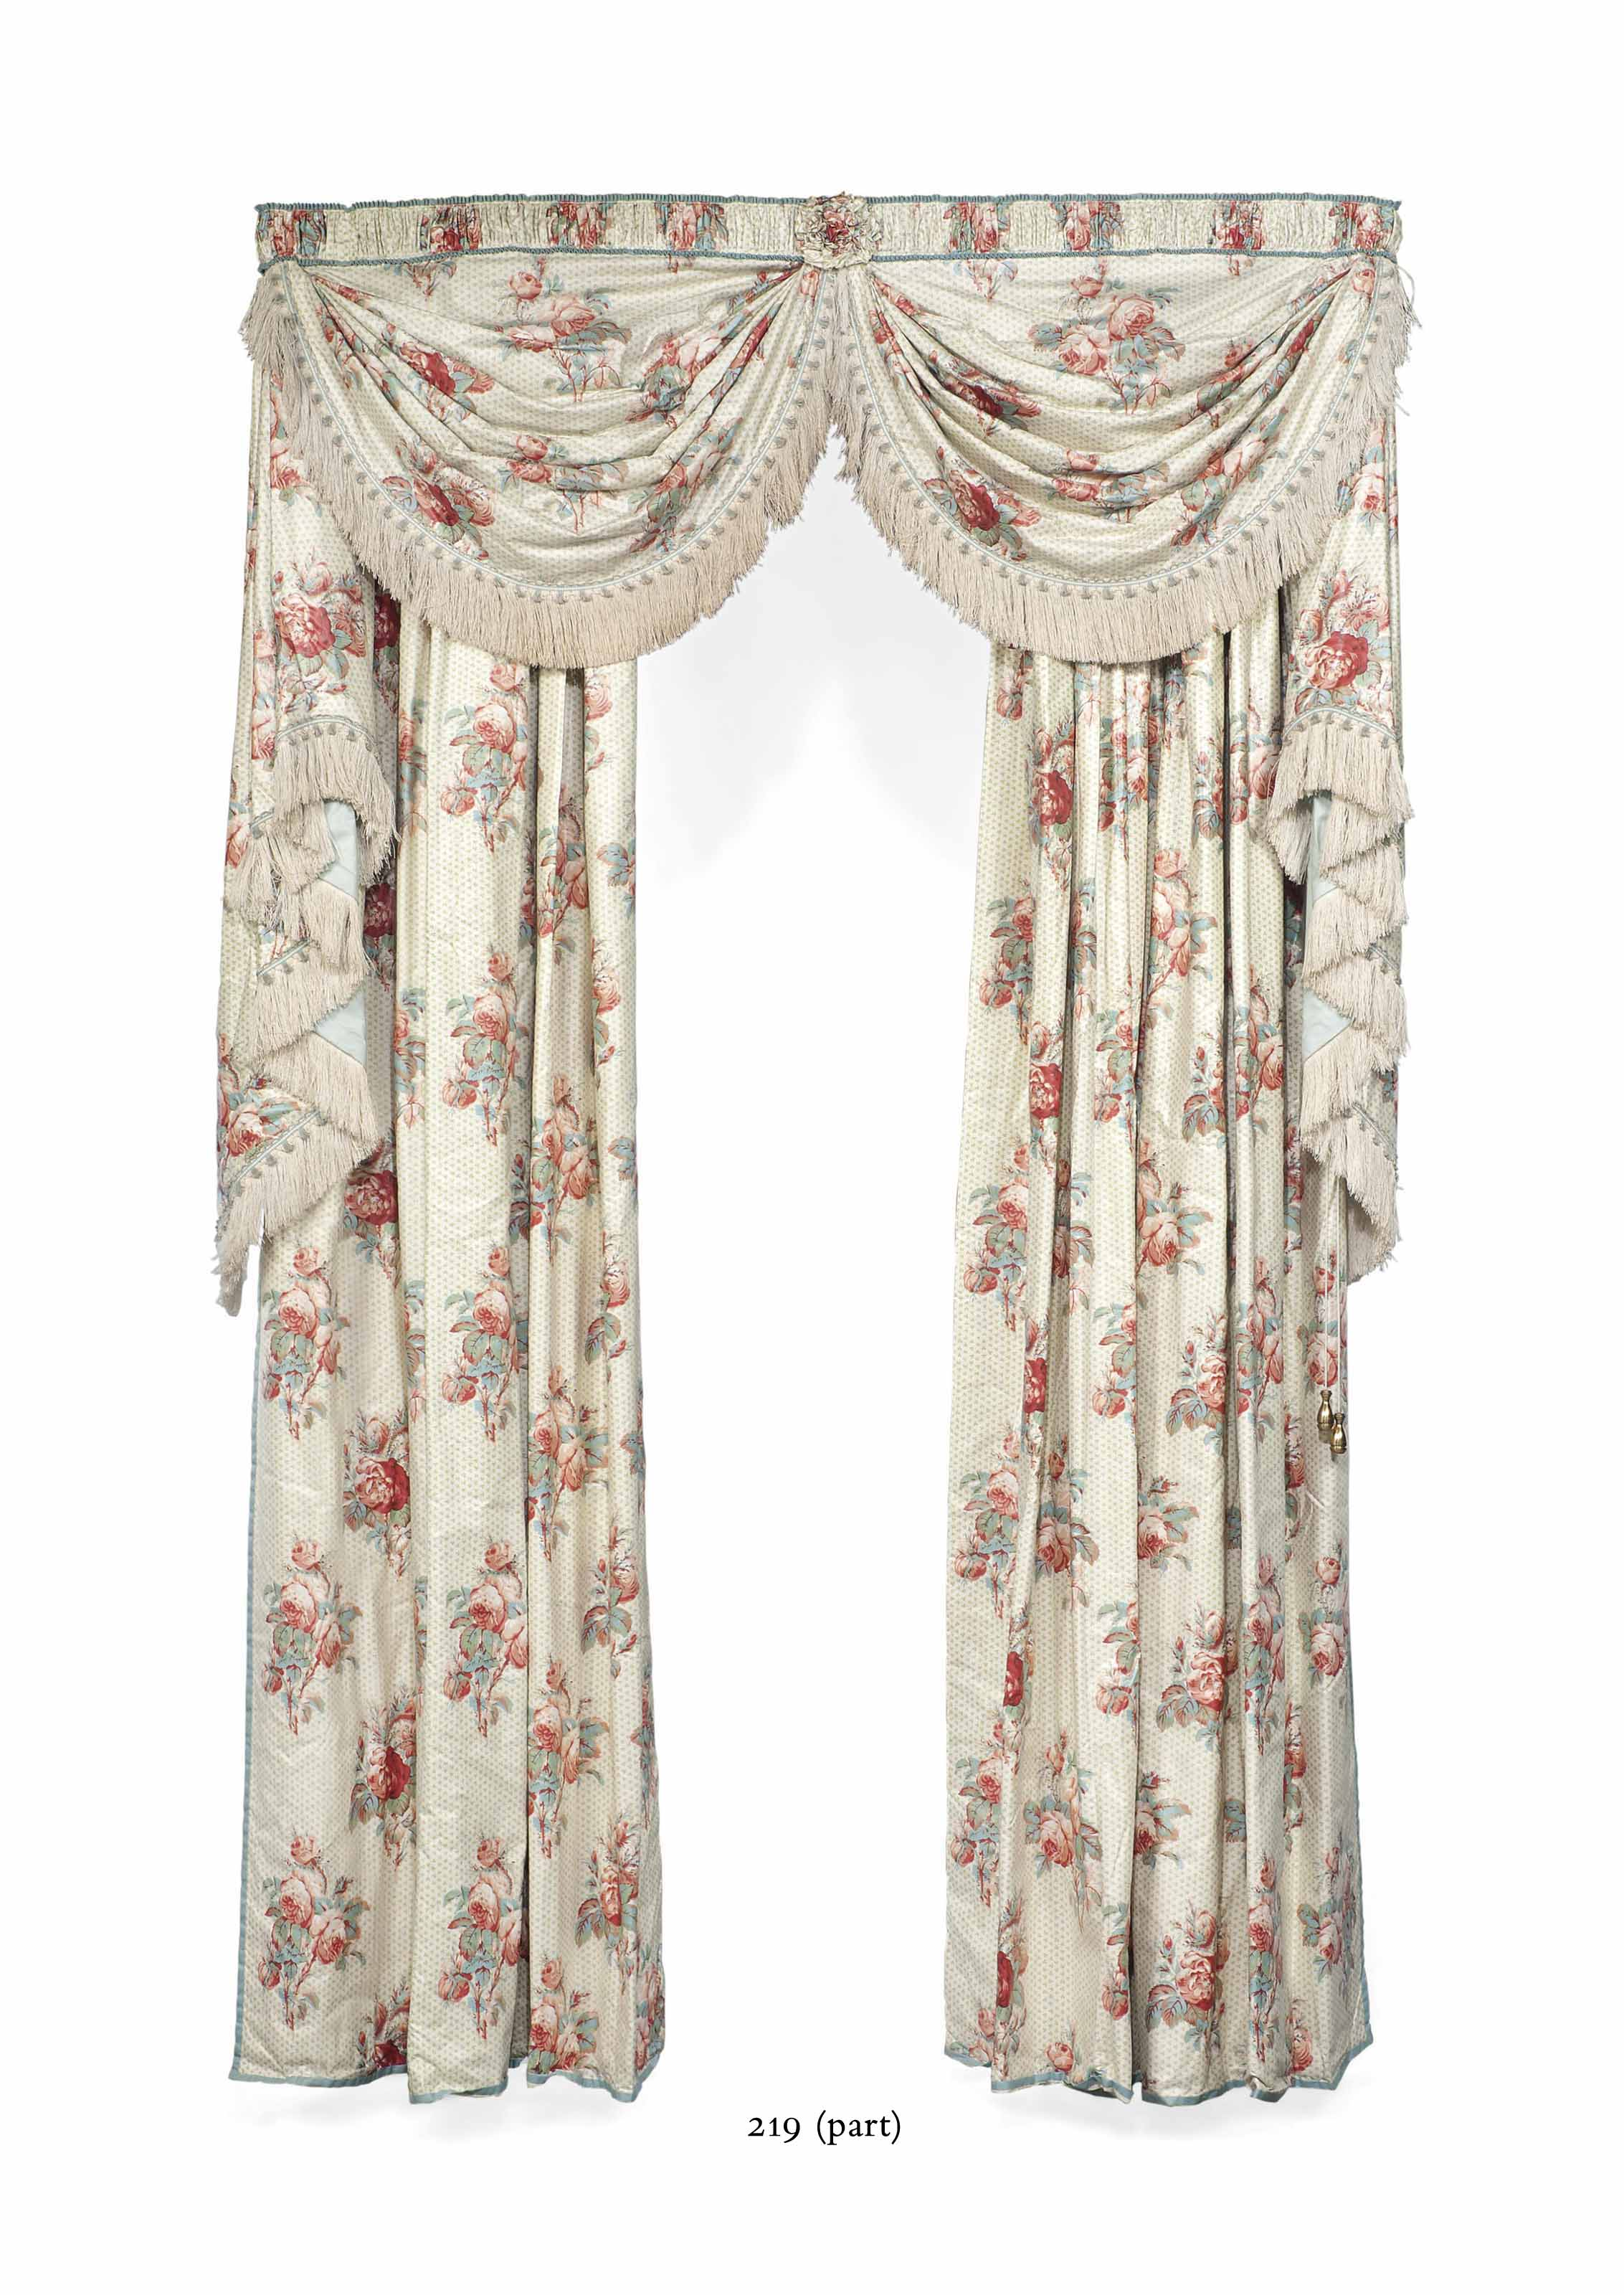 TWO PAIRS OF ROSE-PINK AND PALE-BLUE CHINTZ CURTAINS FROM THE ANTE ROOM, HAMBLEDEN MANOR